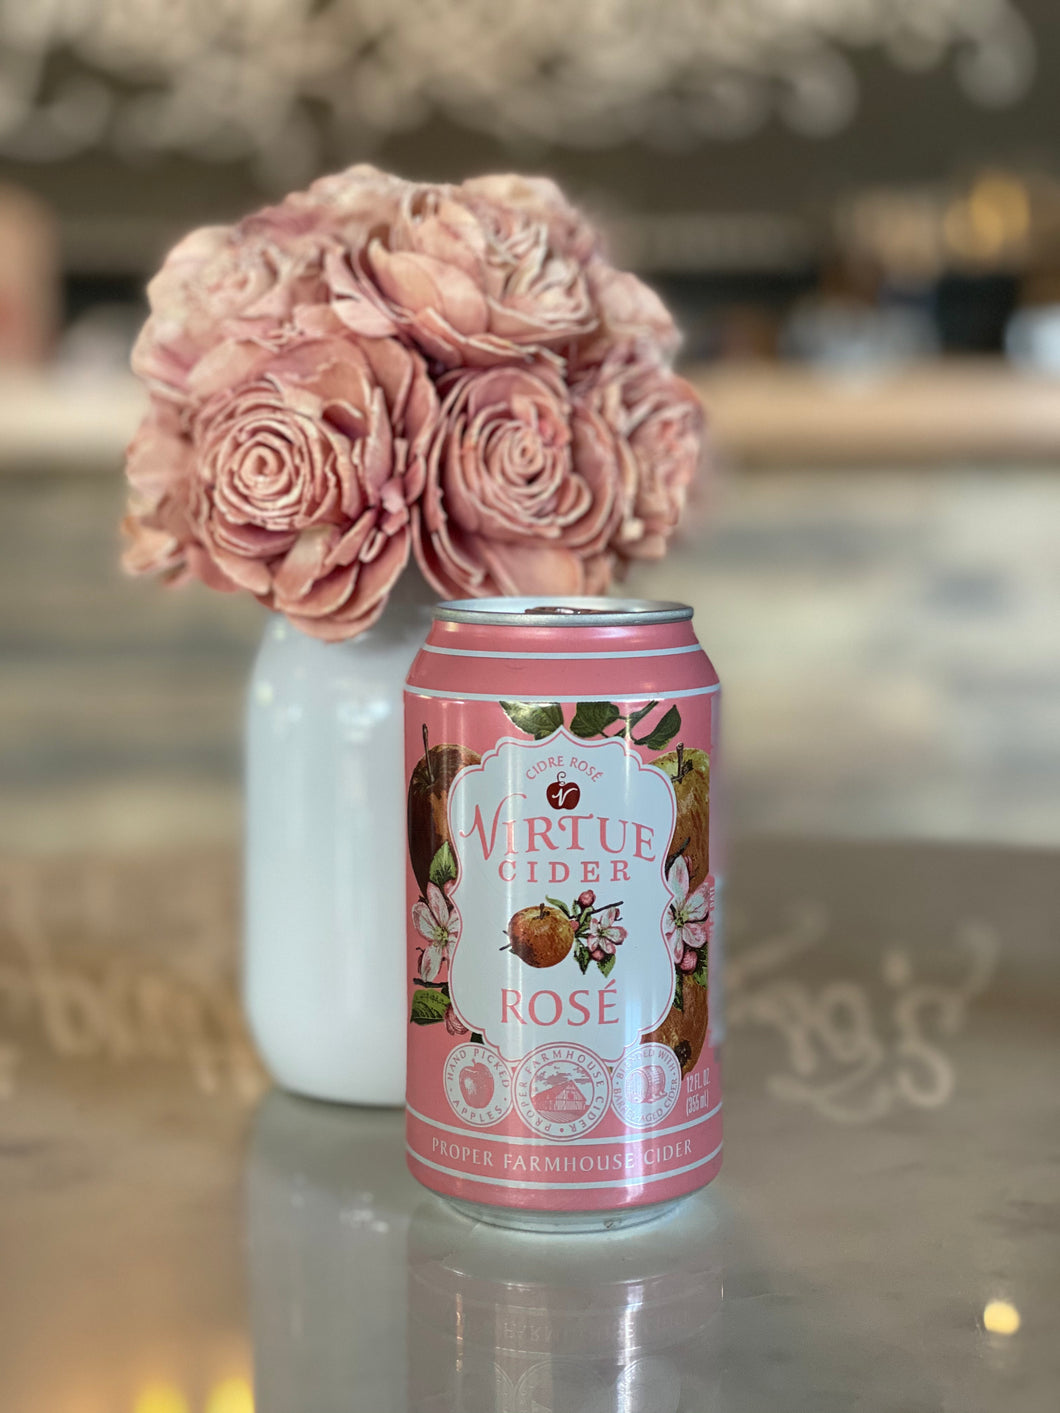 Virtue Cider Rosé